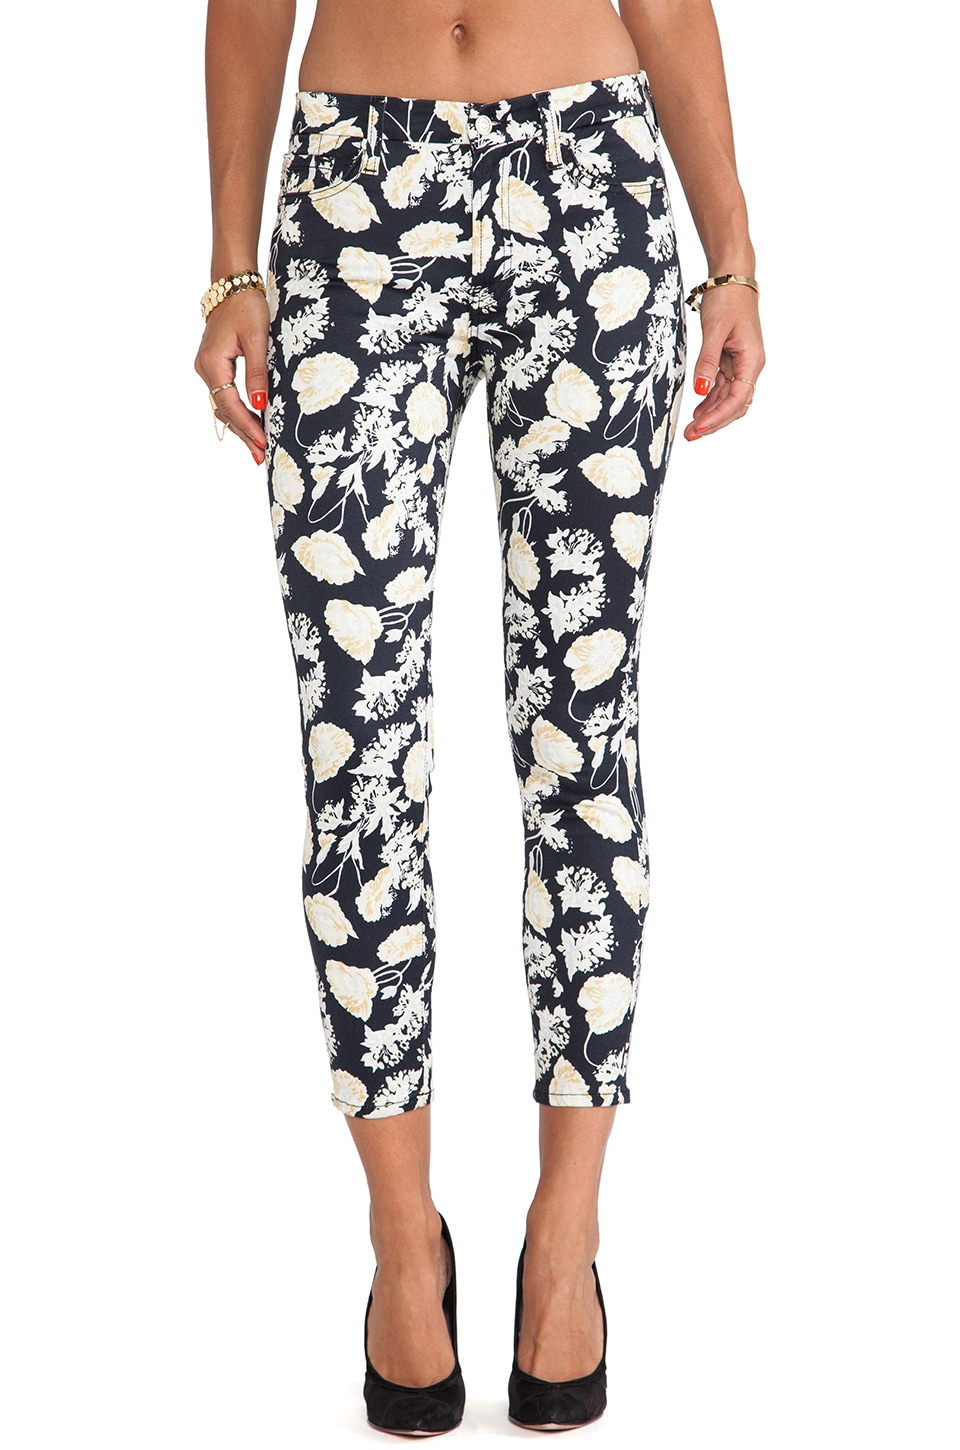 7 For All Mankind The Cropped Skinny in Black Floral Print